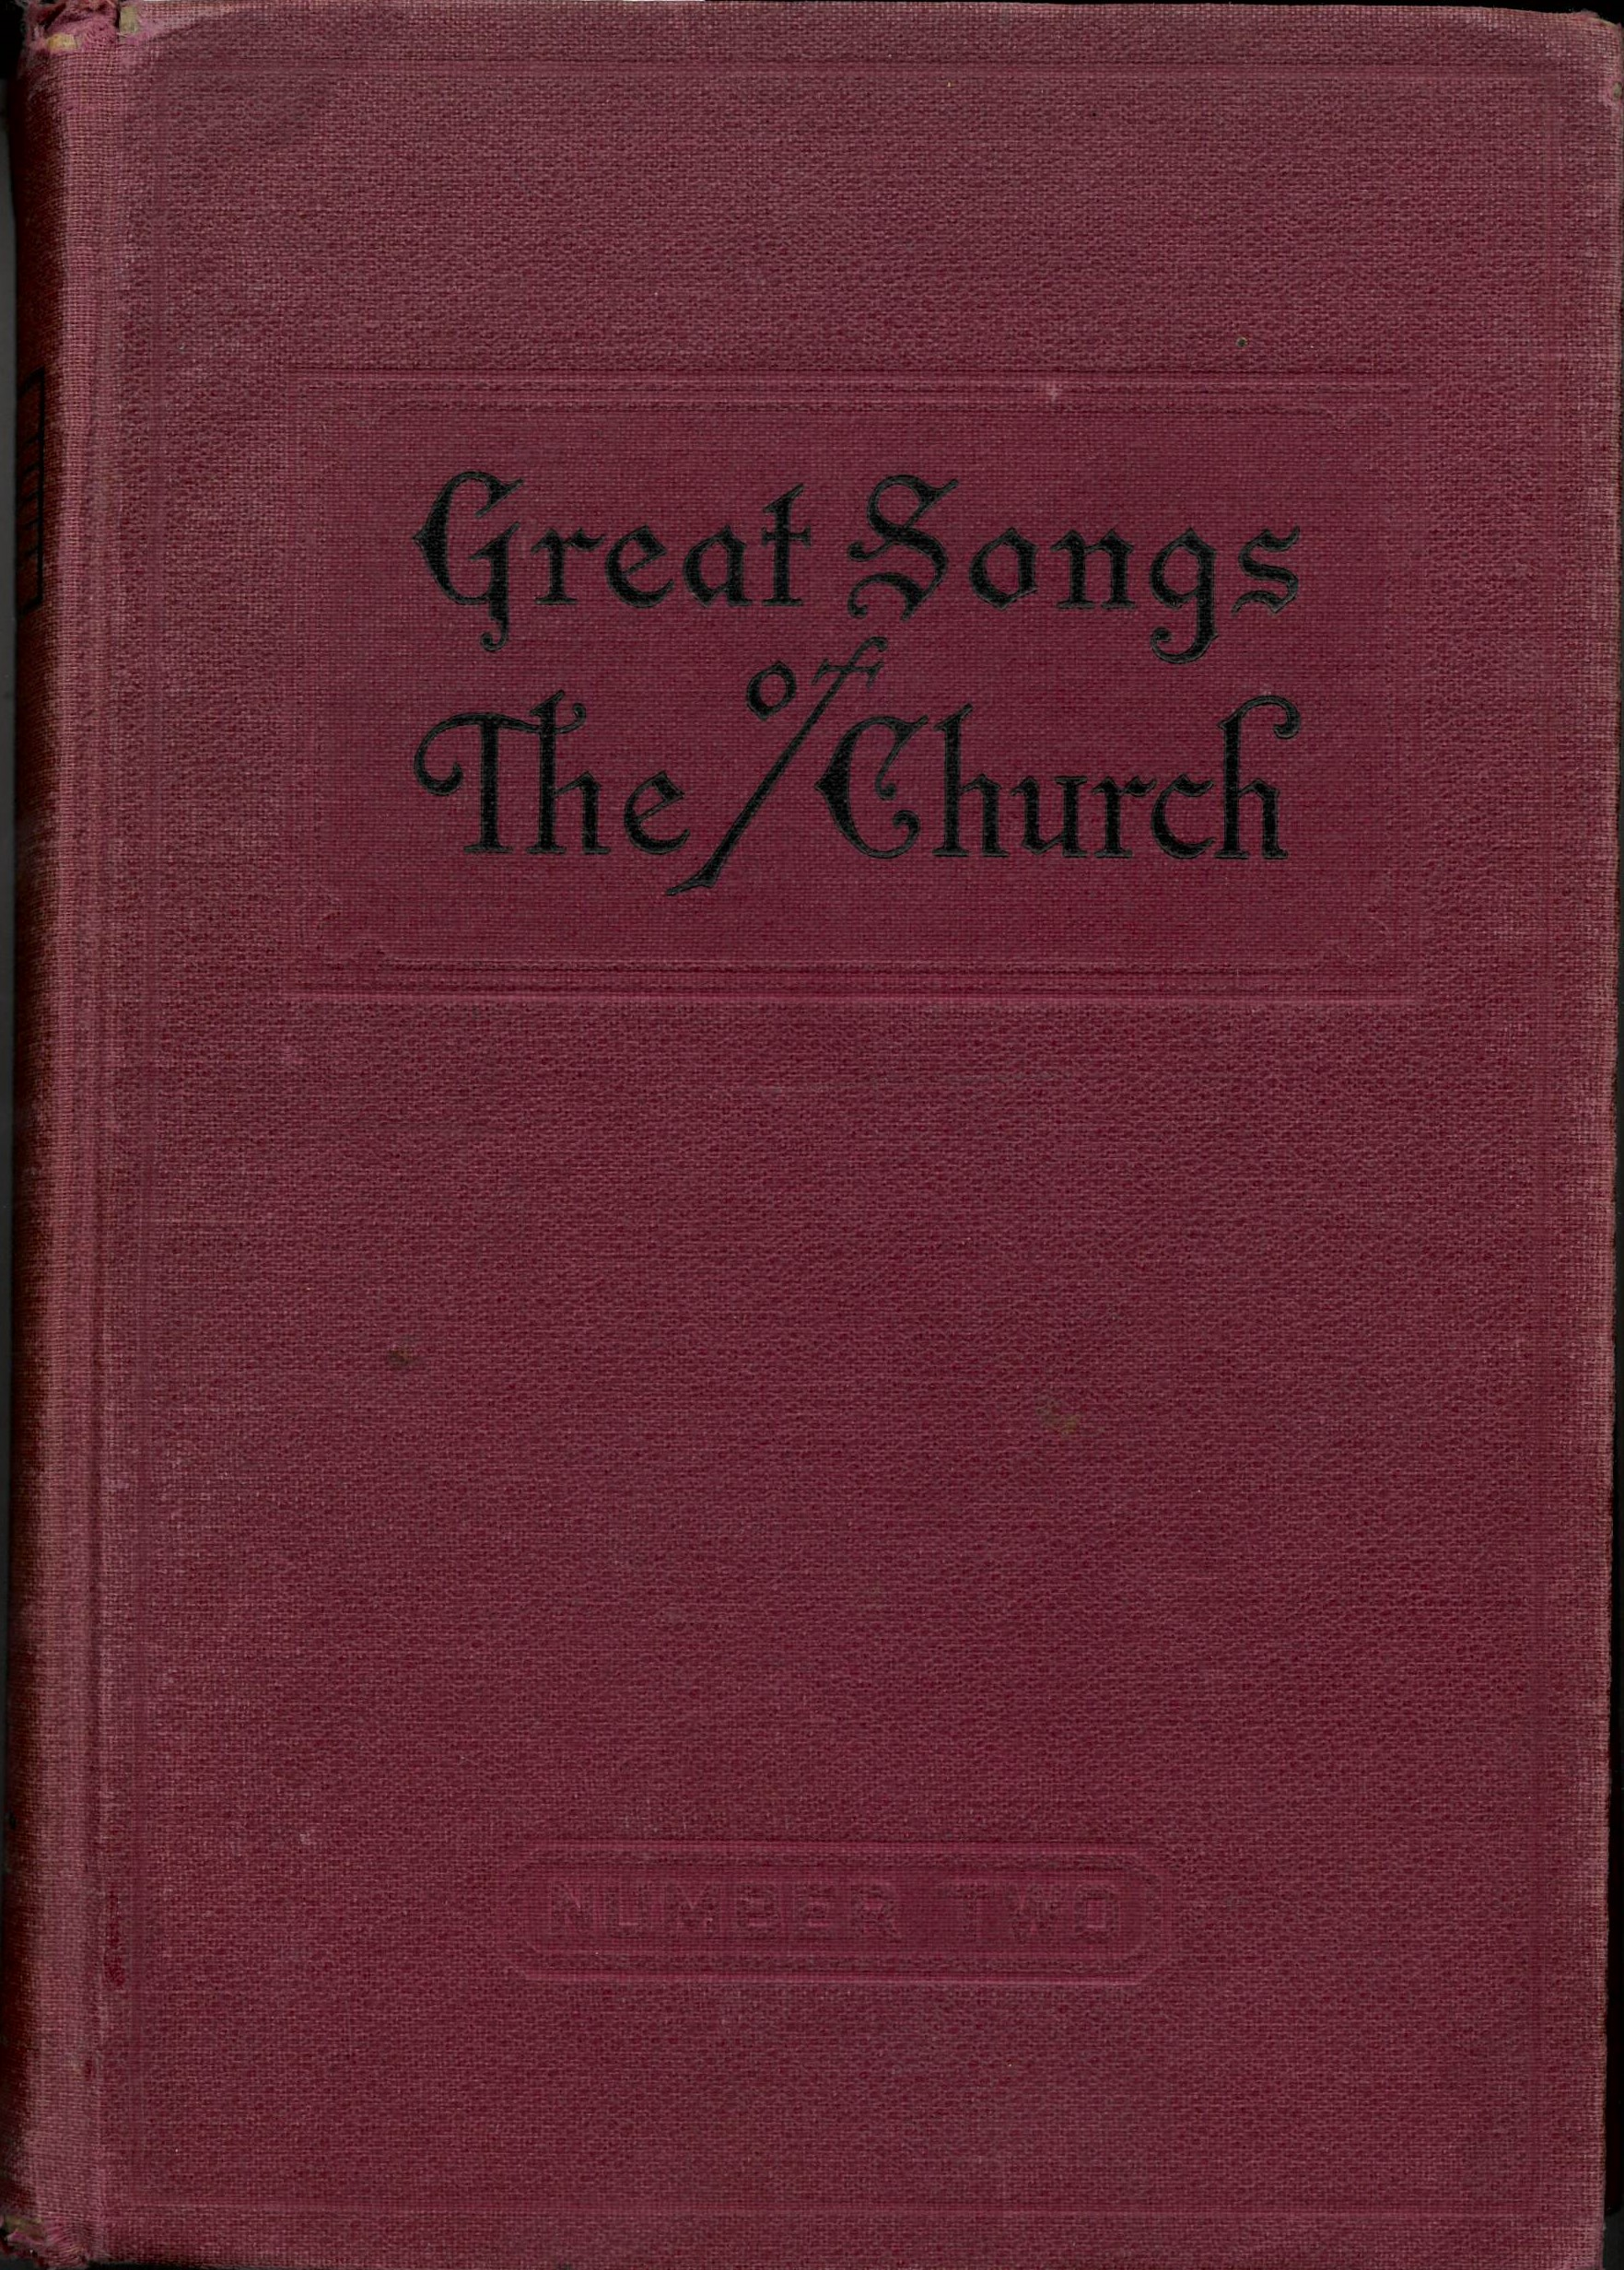 Great Songs of the Church, 28th edition, World Vision Publishing Company: Nashville, ca. 1948. Front cover.